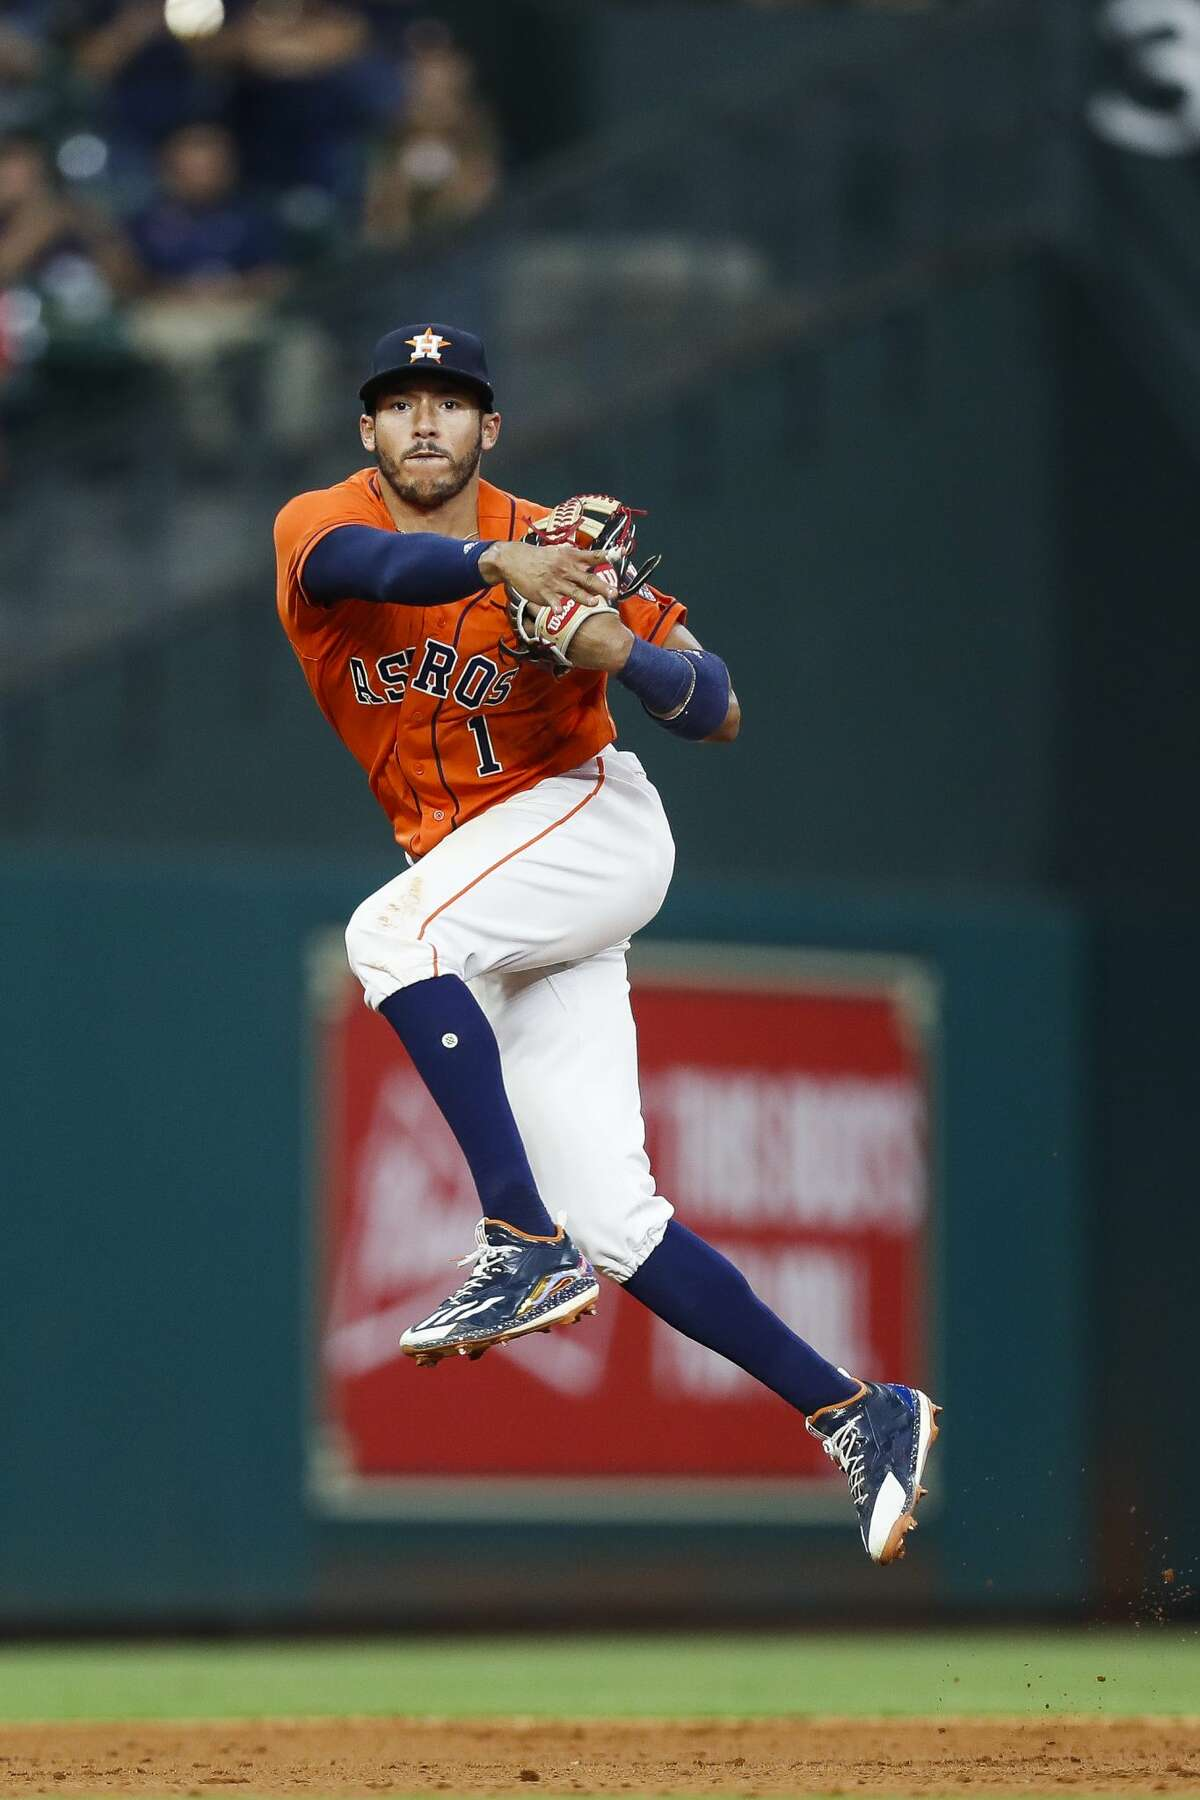 Houston Astros shortstop Carlos Correa (1) throws the final out during the ninth inning as the Houston Astros take on the Oakland Athletics at Minute Maid Park Friday, April 28, 2017 in Houston. ( Michael Ciaglo / Houston Chronicle)